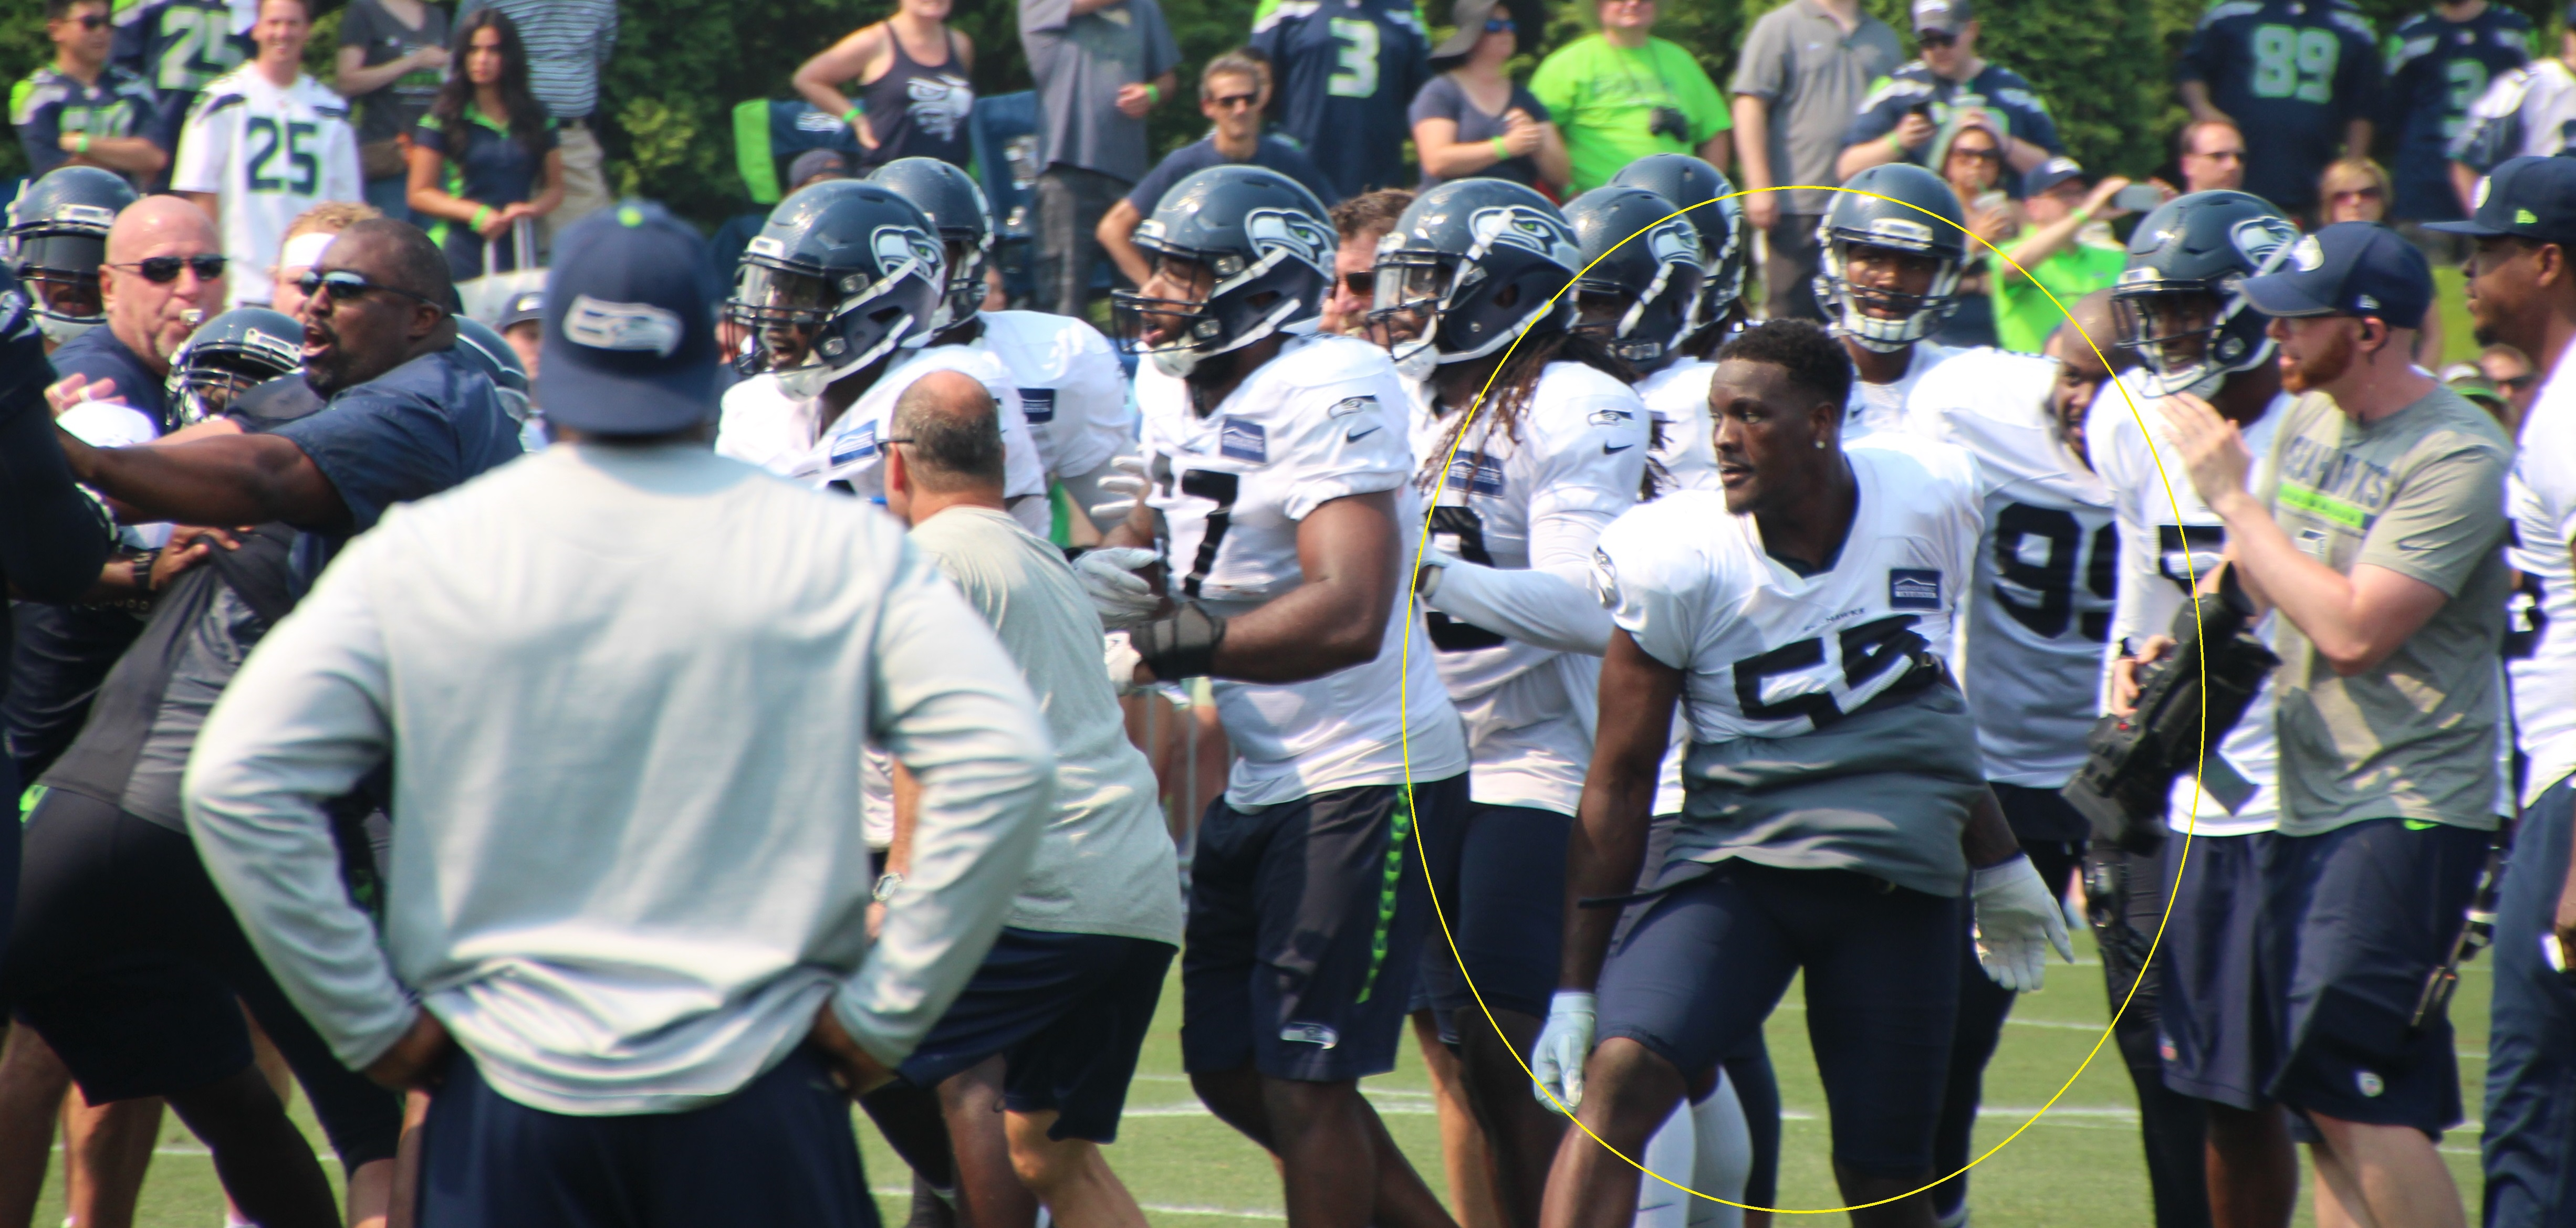 s emerge of Frank Clark s fight with Germain Ifedi in